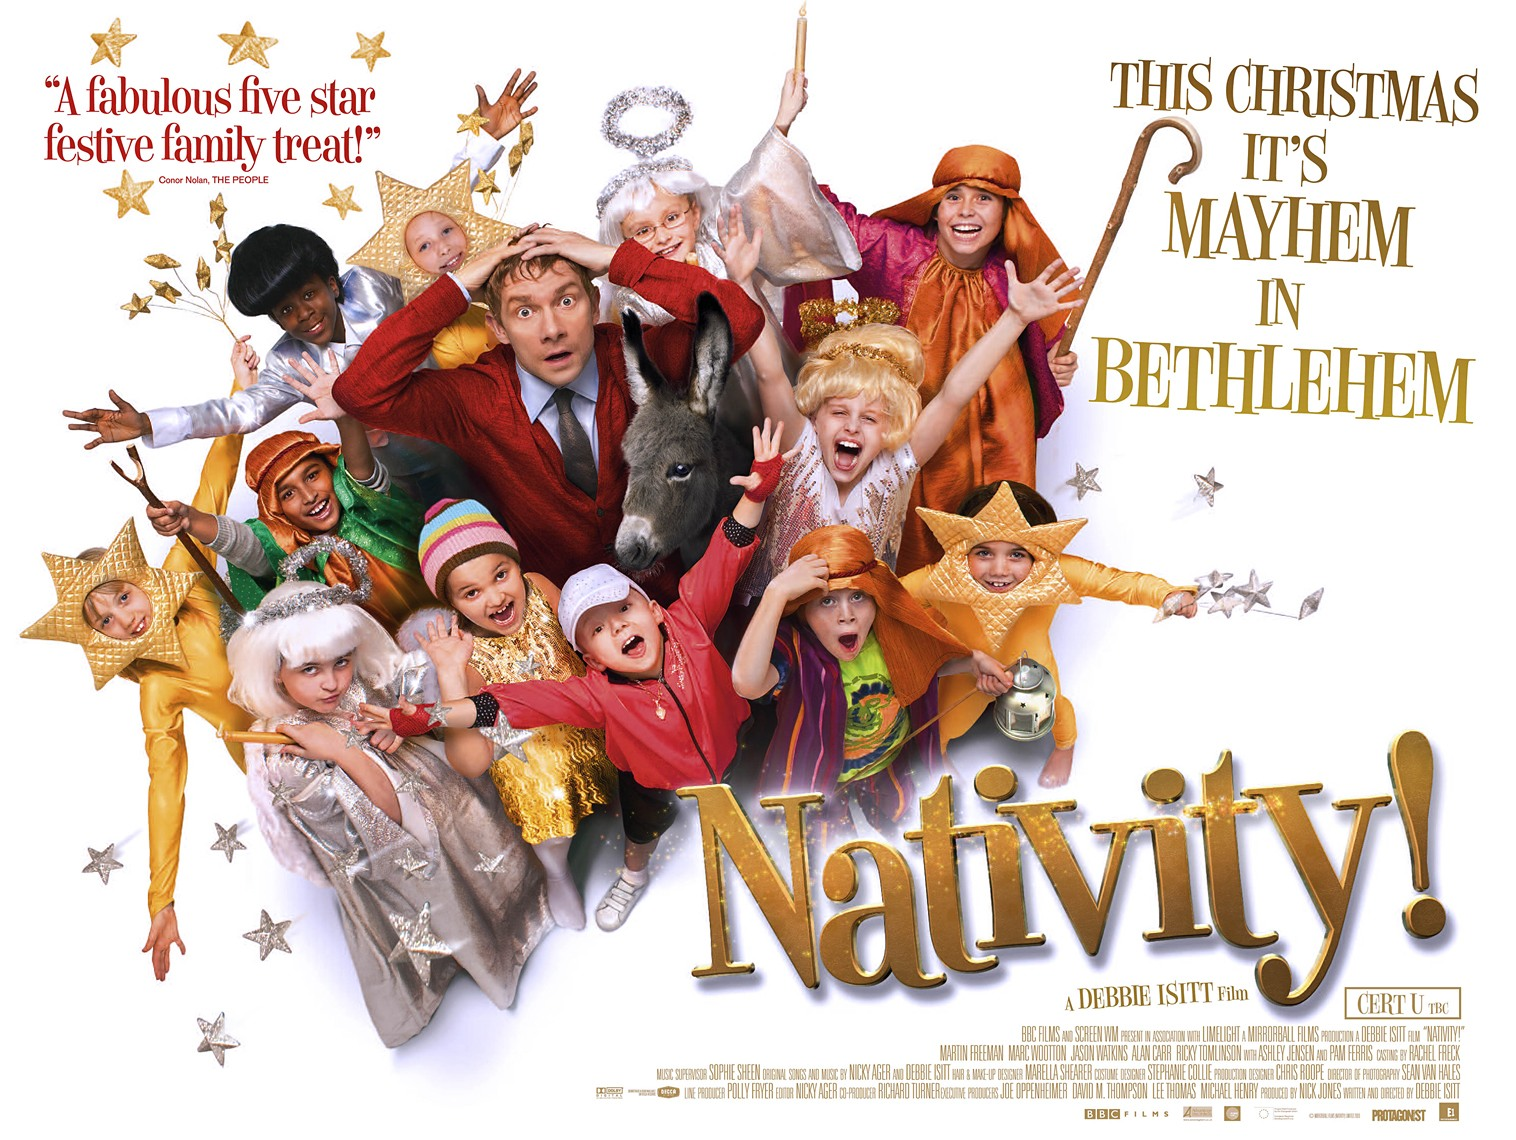 Nativity! -  BBC Films